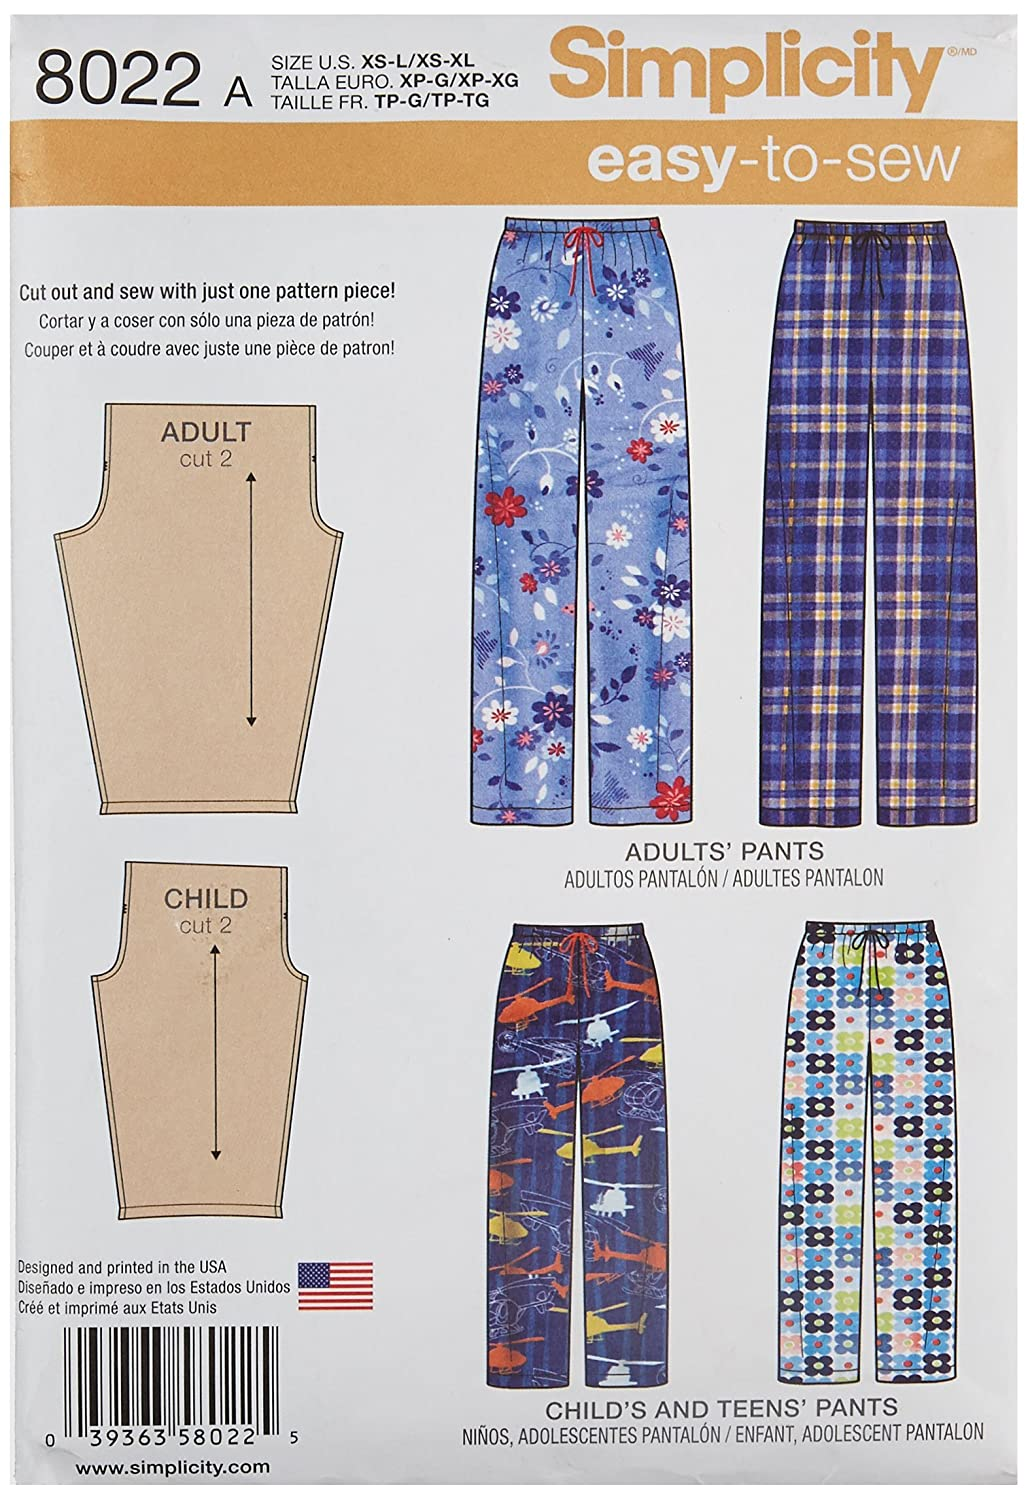 Simplicity Creative Patterns US8022A Child's, Teens' and Adults Pants Size: A (Xs - L / Xs - XL), 8022 OUTLOOK GROUP CORP